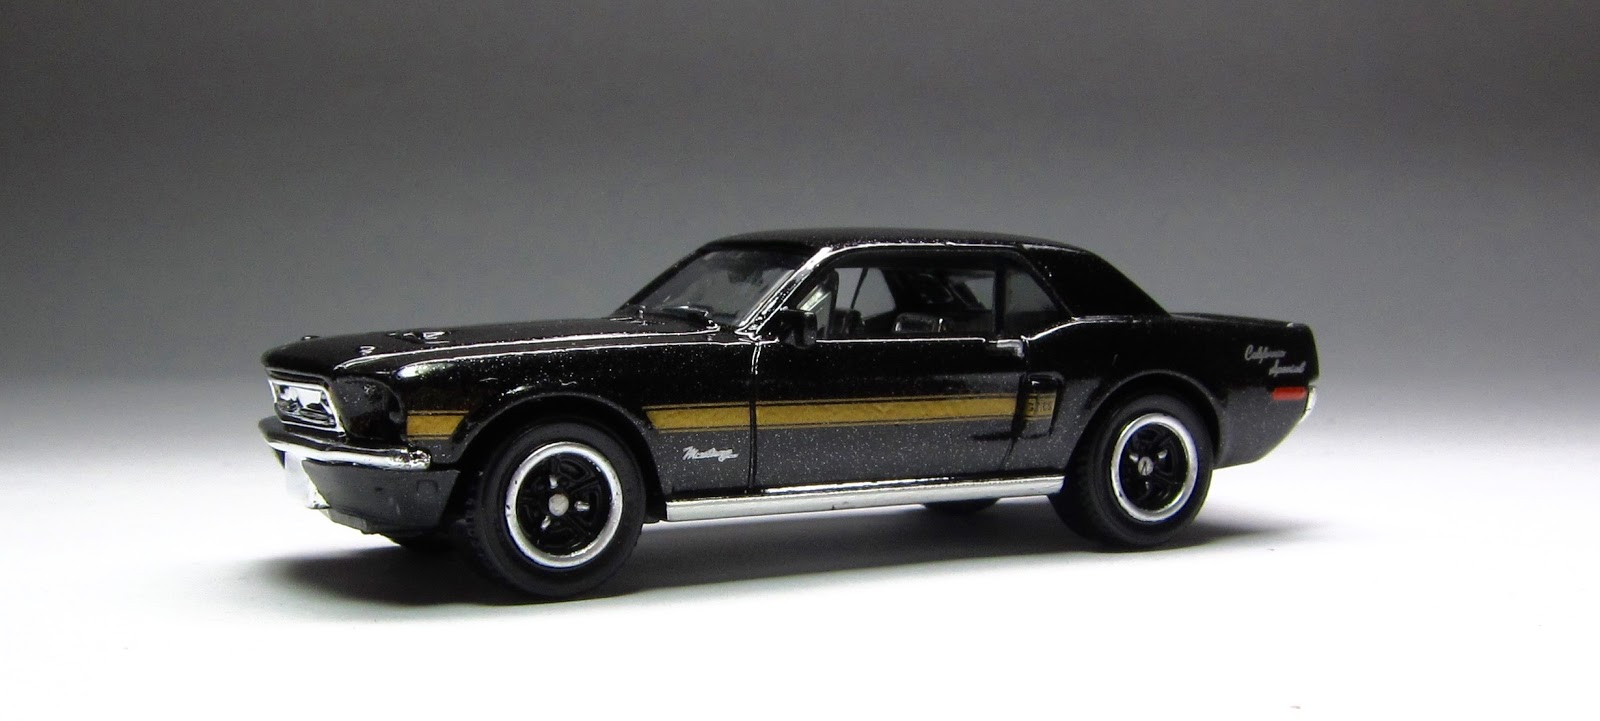 First Look 2015 Matchbox 68 Ford Mustang Gt Cs In Black California Special